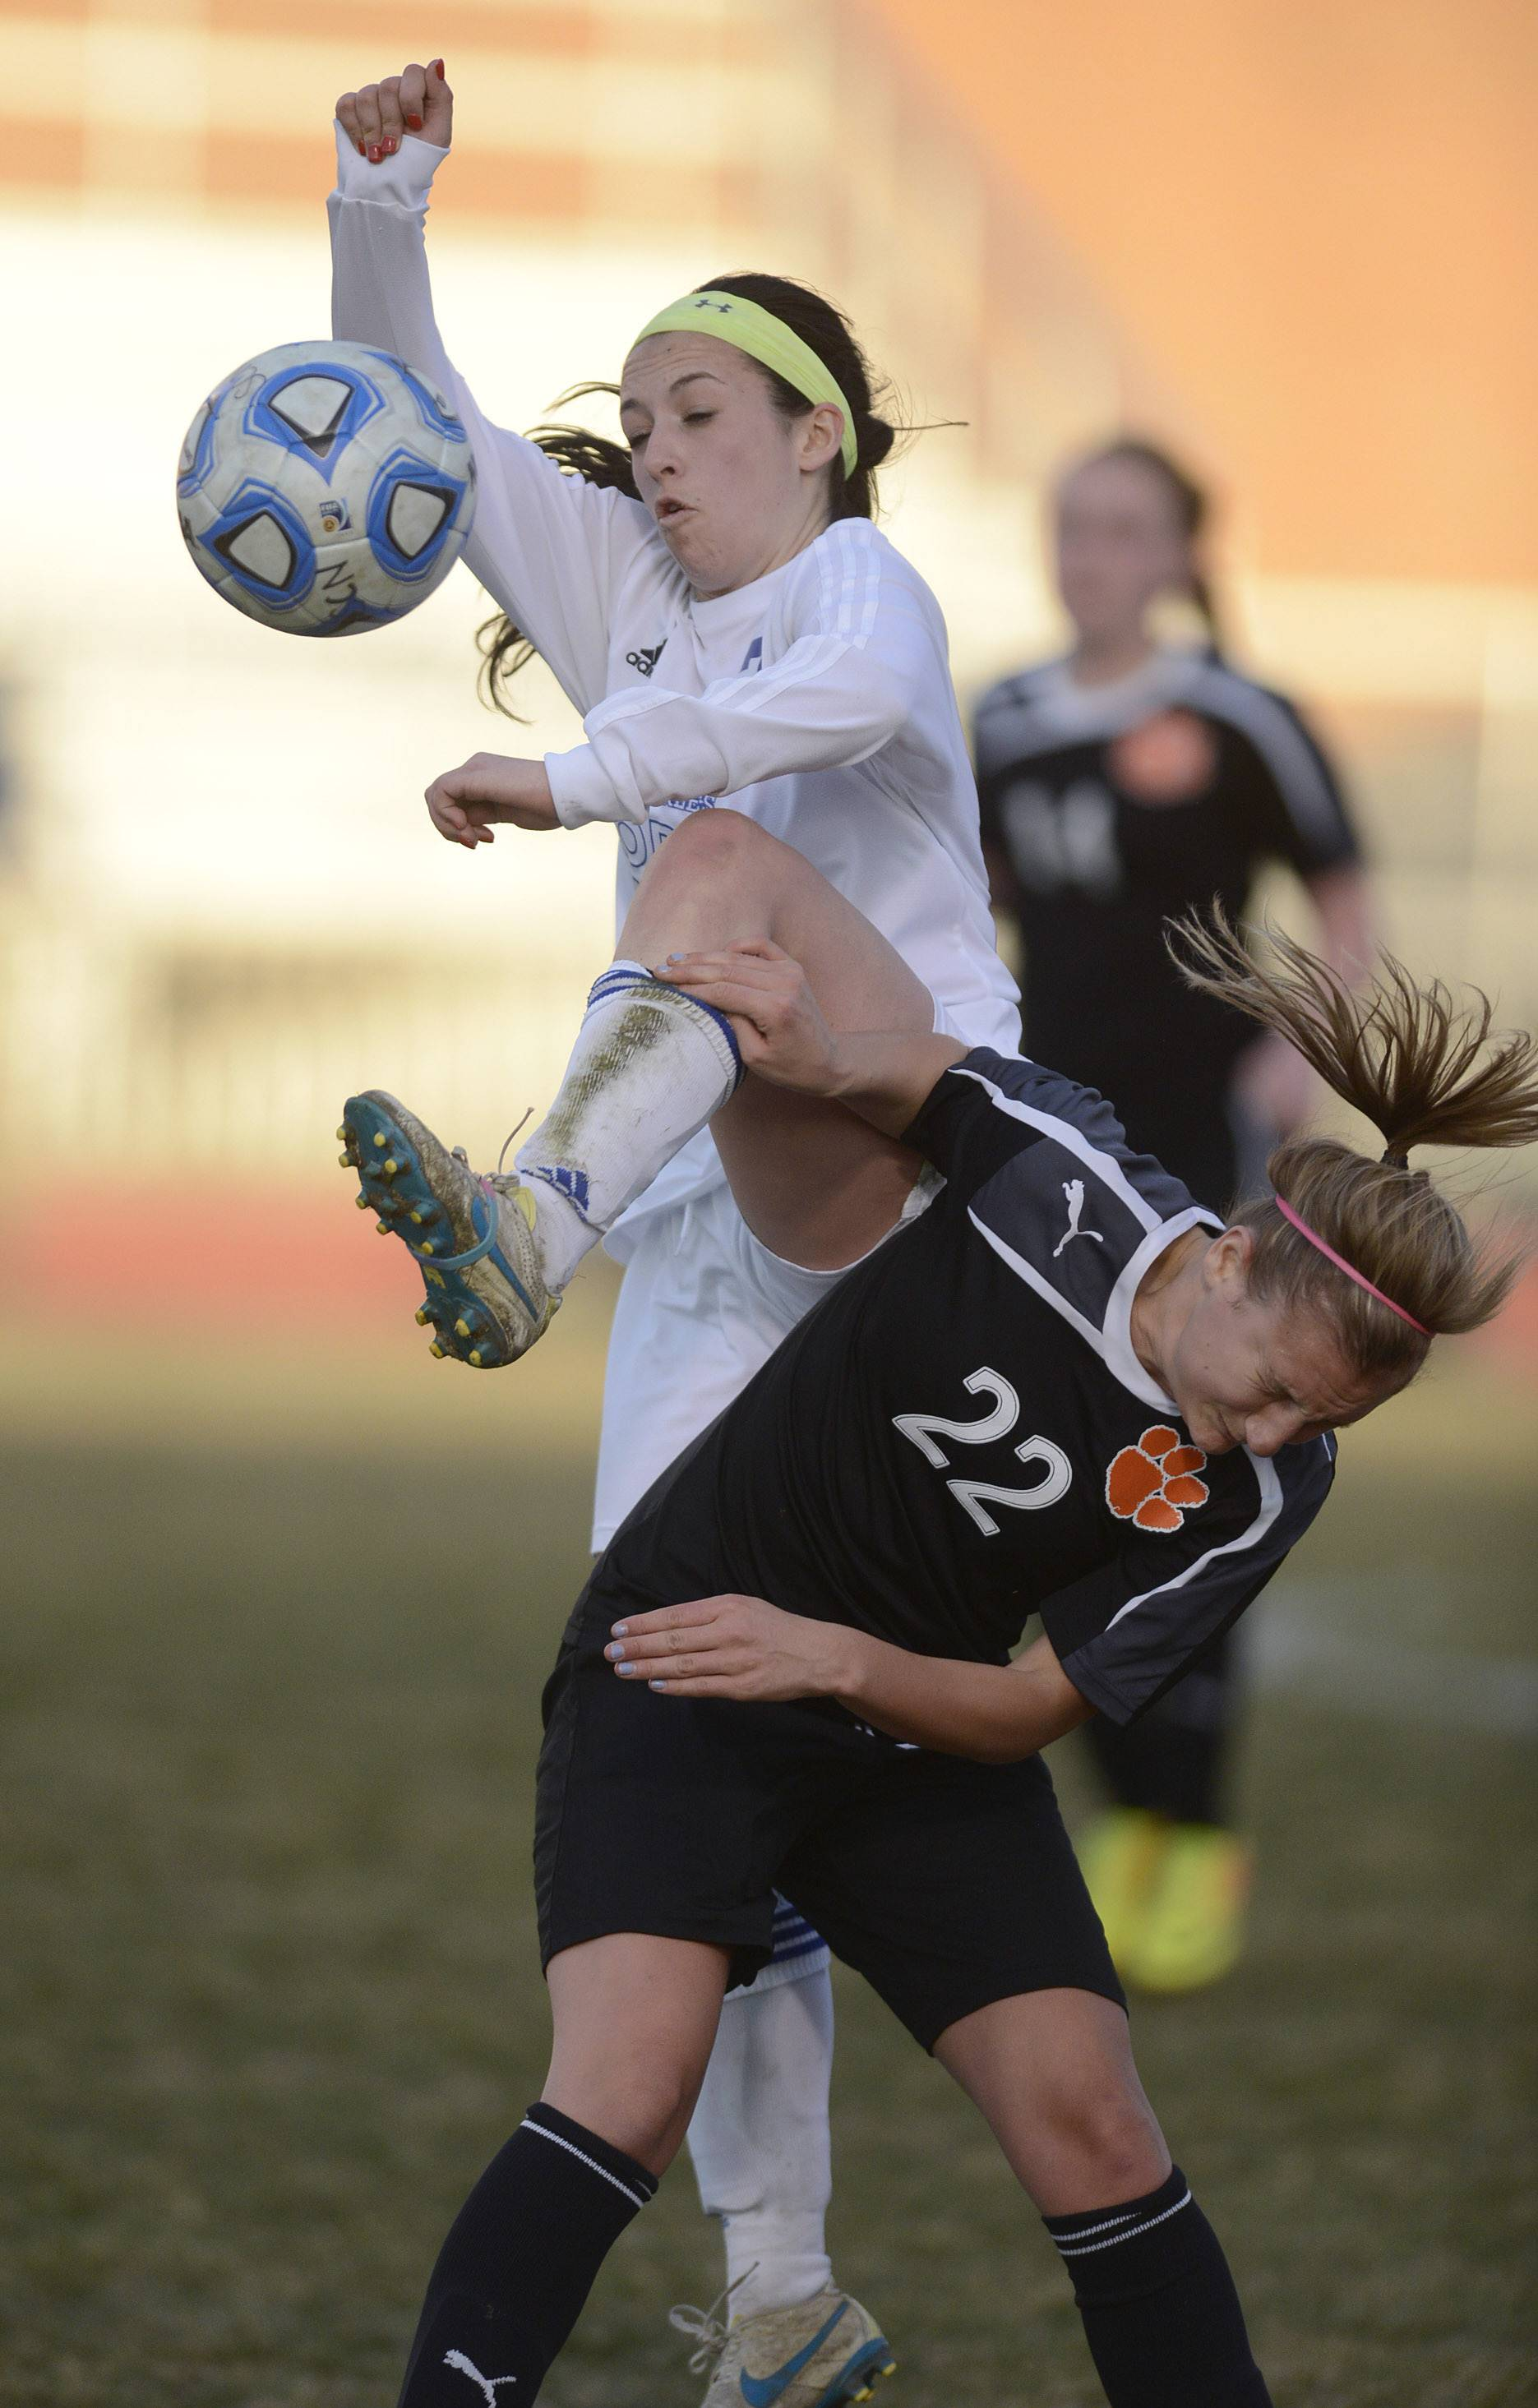 St. Charles North's Ashlyn Walter collides with Wheaton Warrenville South's Nikki Molino during Thursday's game.